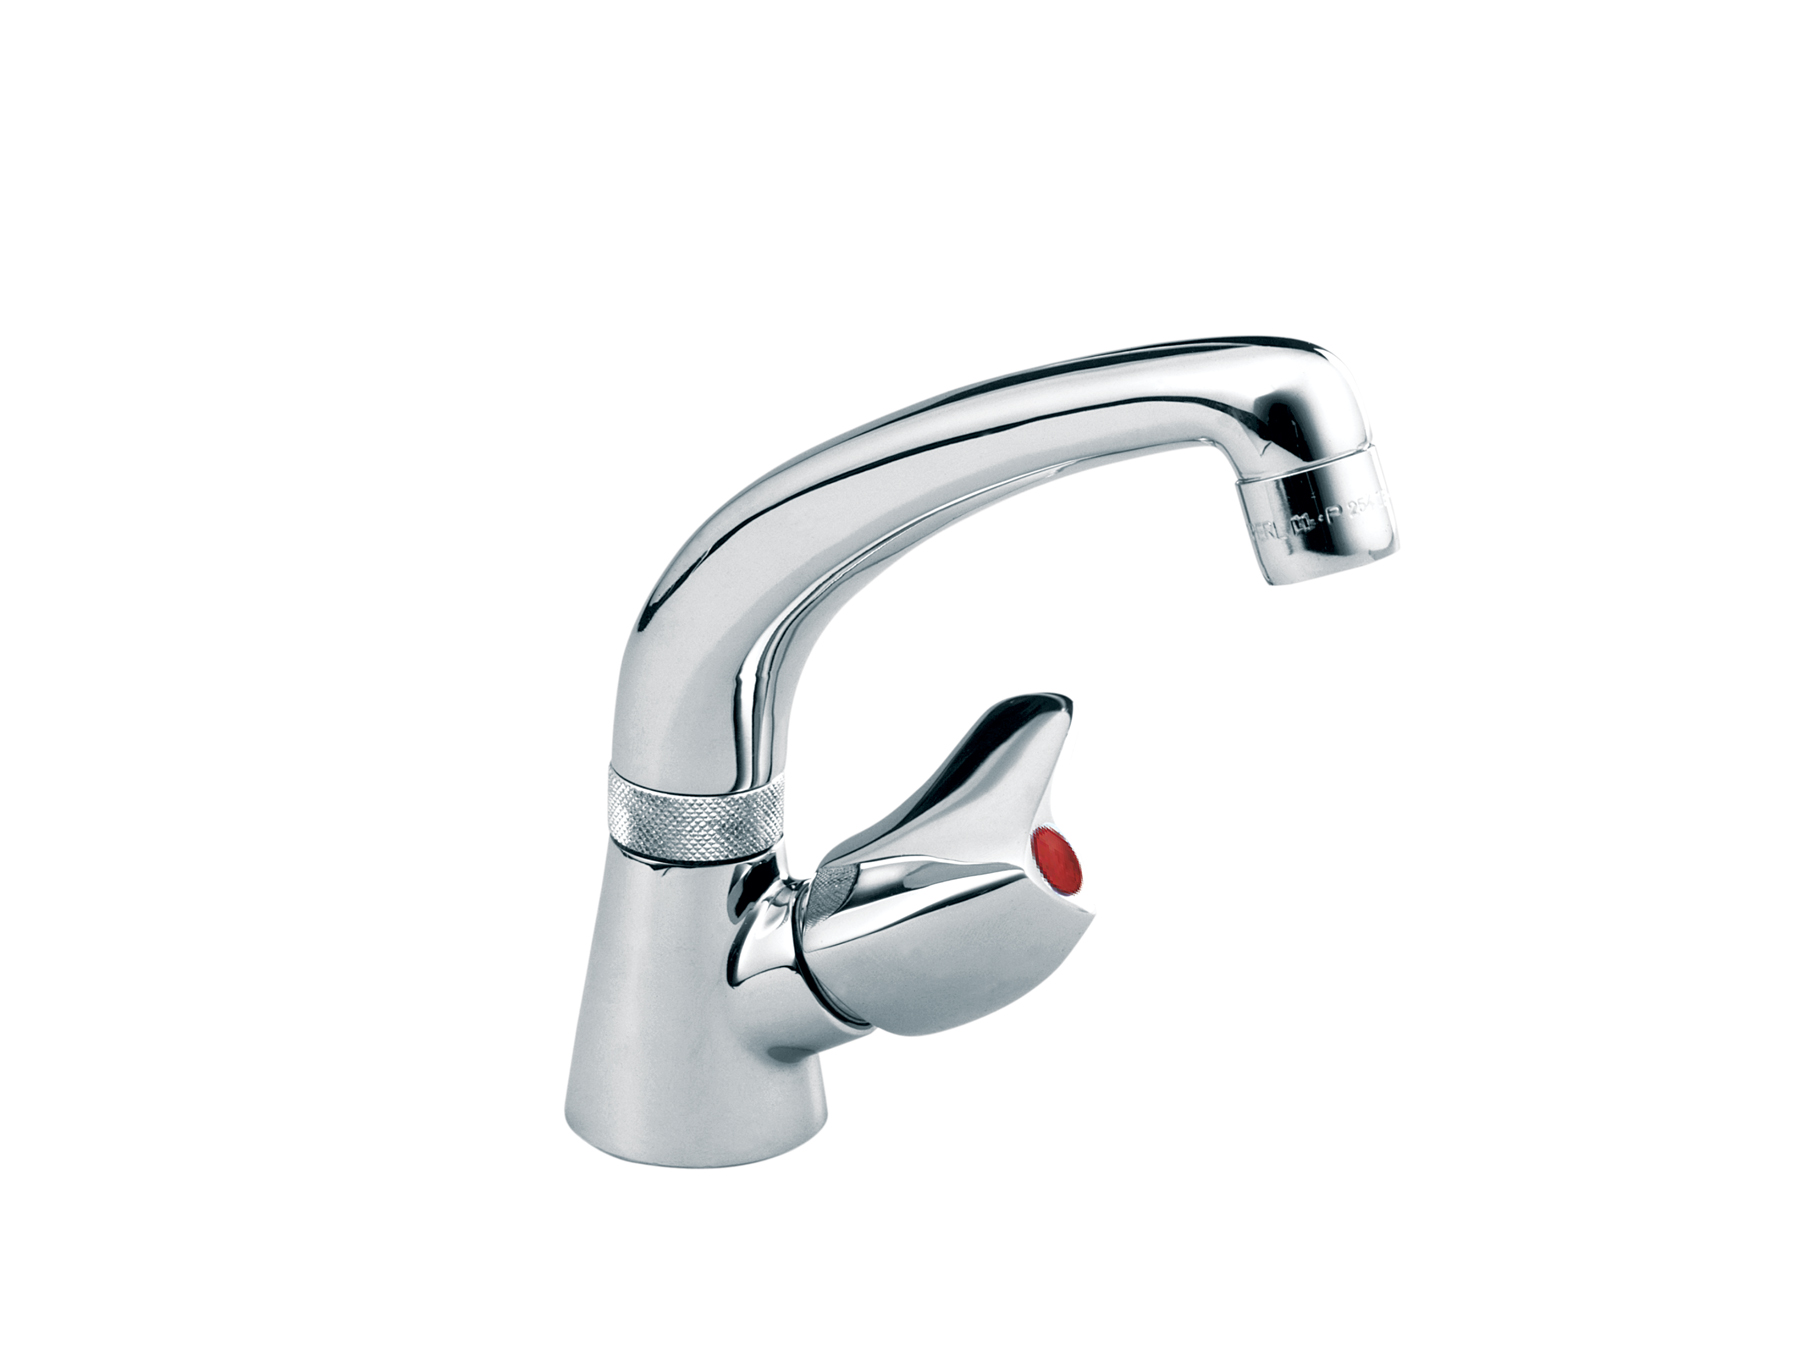 Sink tap, swing spout, hot 1002.--.36